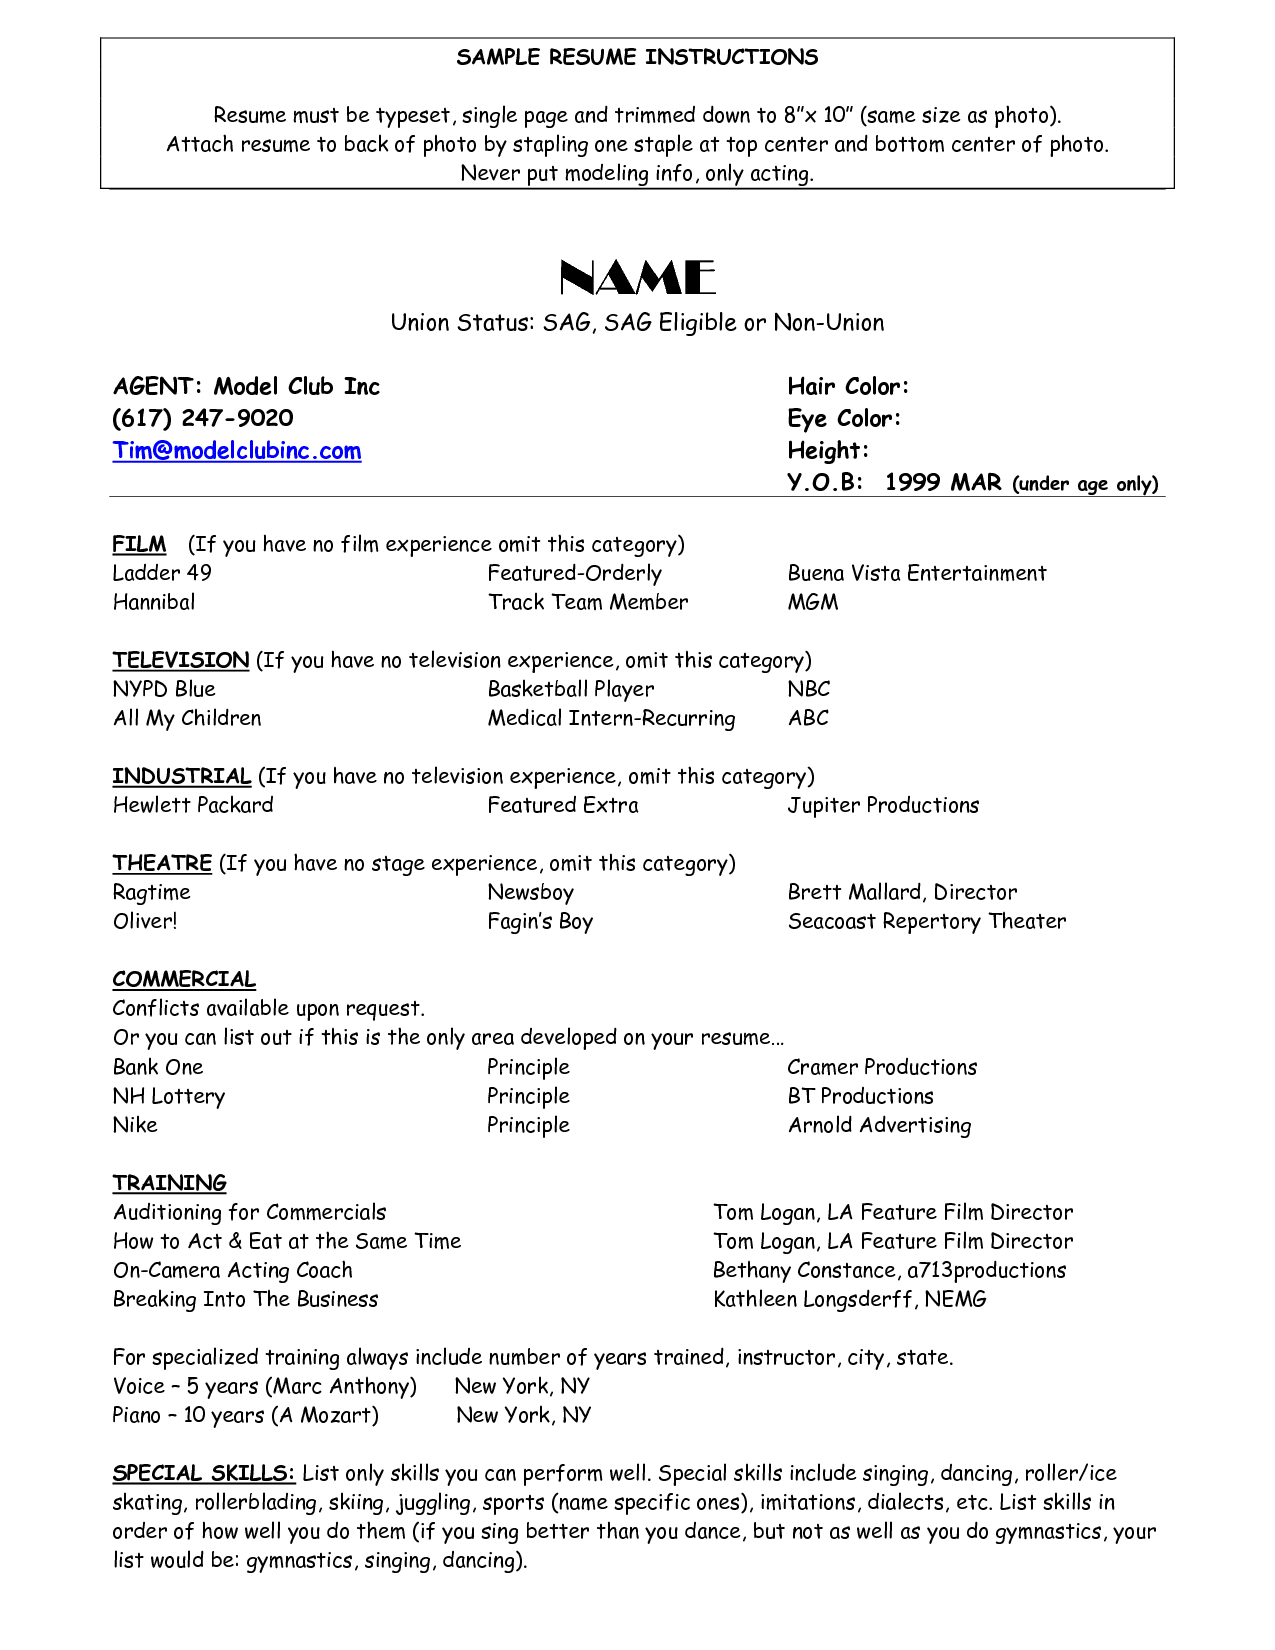 Acting Resume Beginner Awesome Resume For Child Actor  Scope Of Work Template  Acting Resumes .